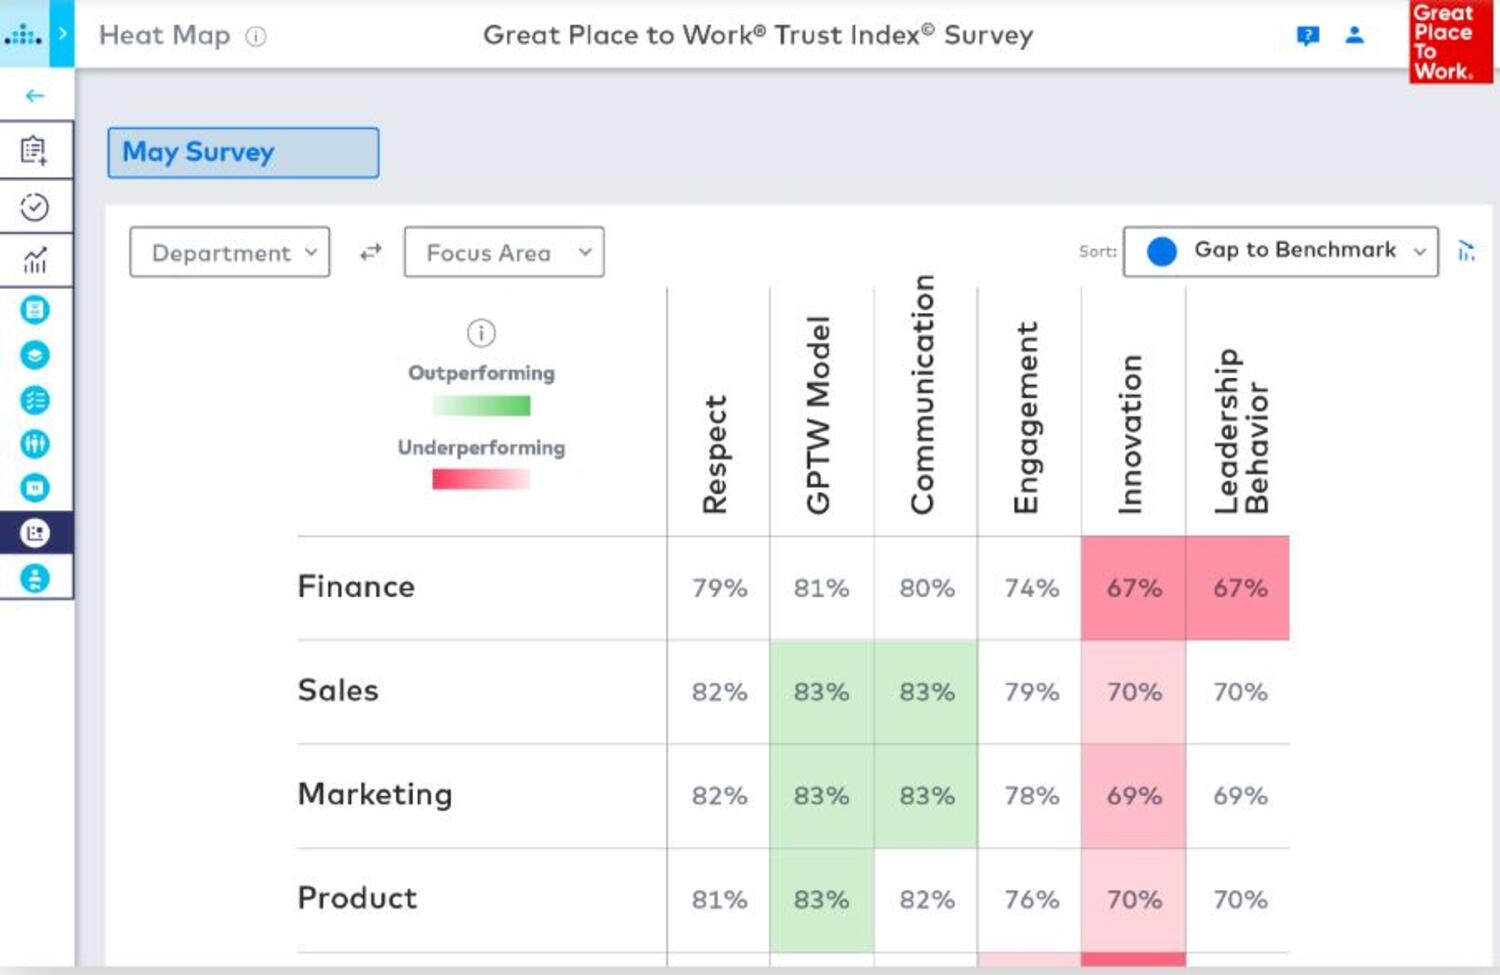 How to Analyze Employee Survey Results